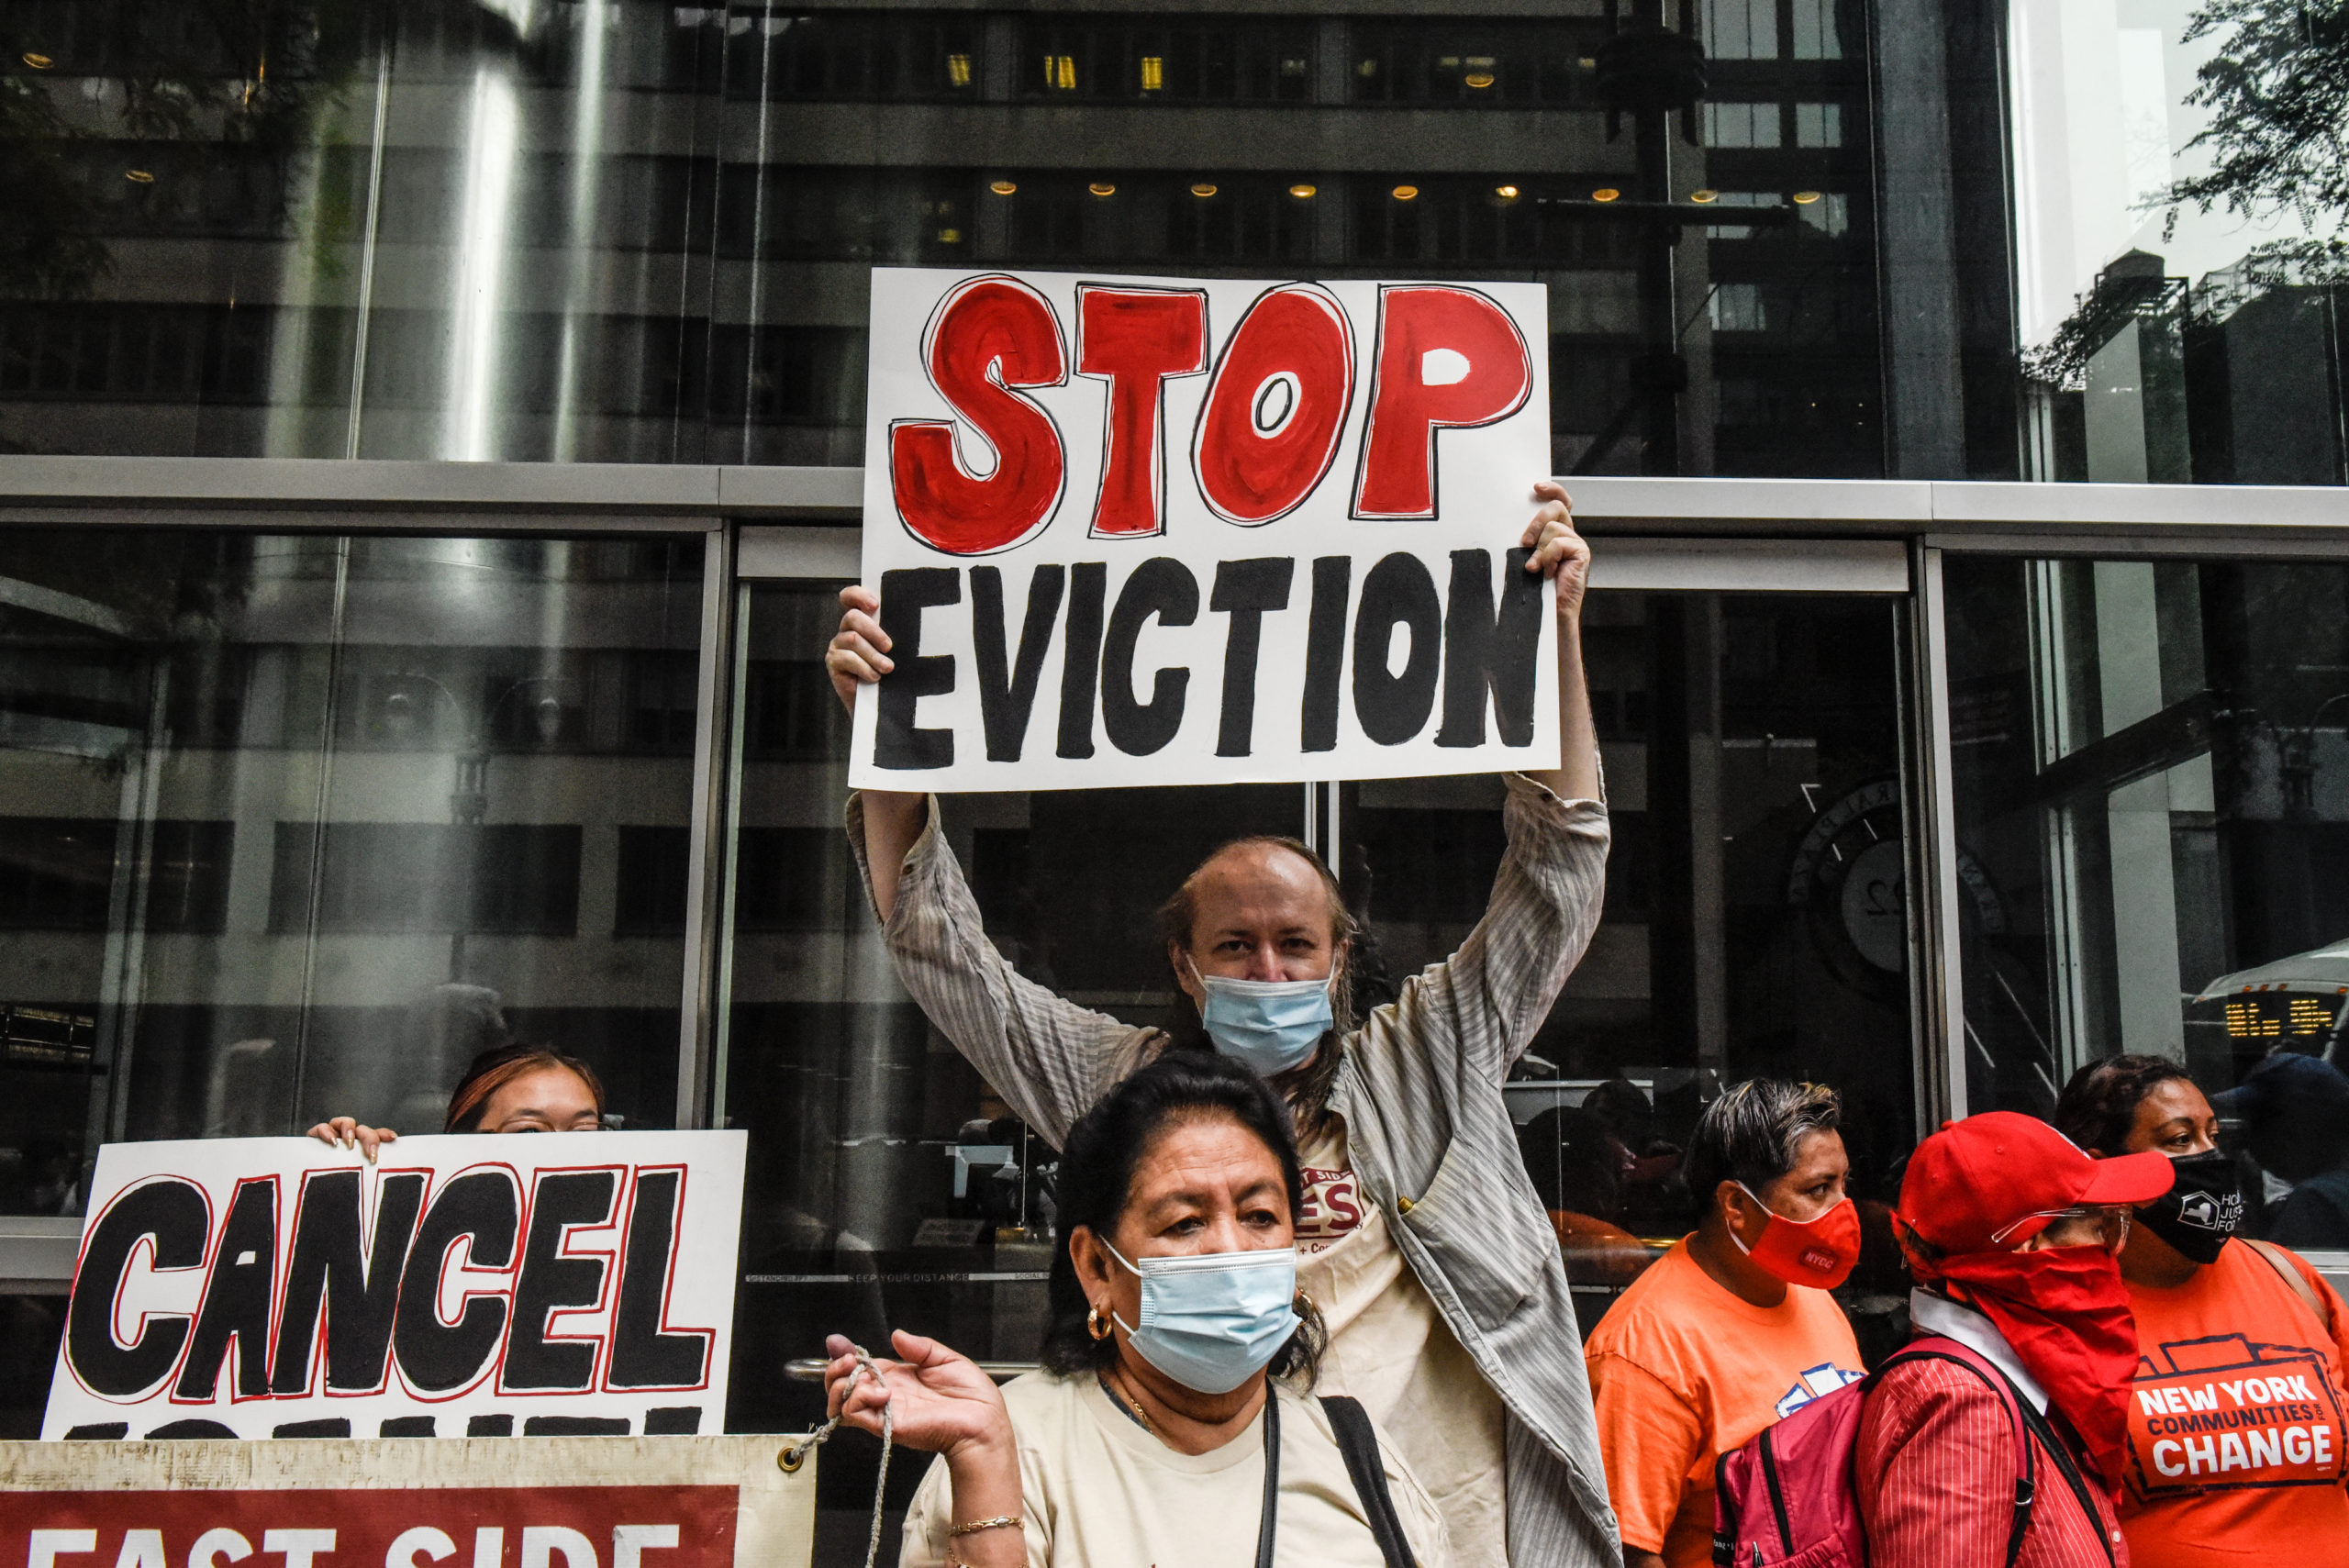 People participate in a protest for a new eviction moratorium on Aug. 4 in New York City. (Stephanie Keith/Getty Images)